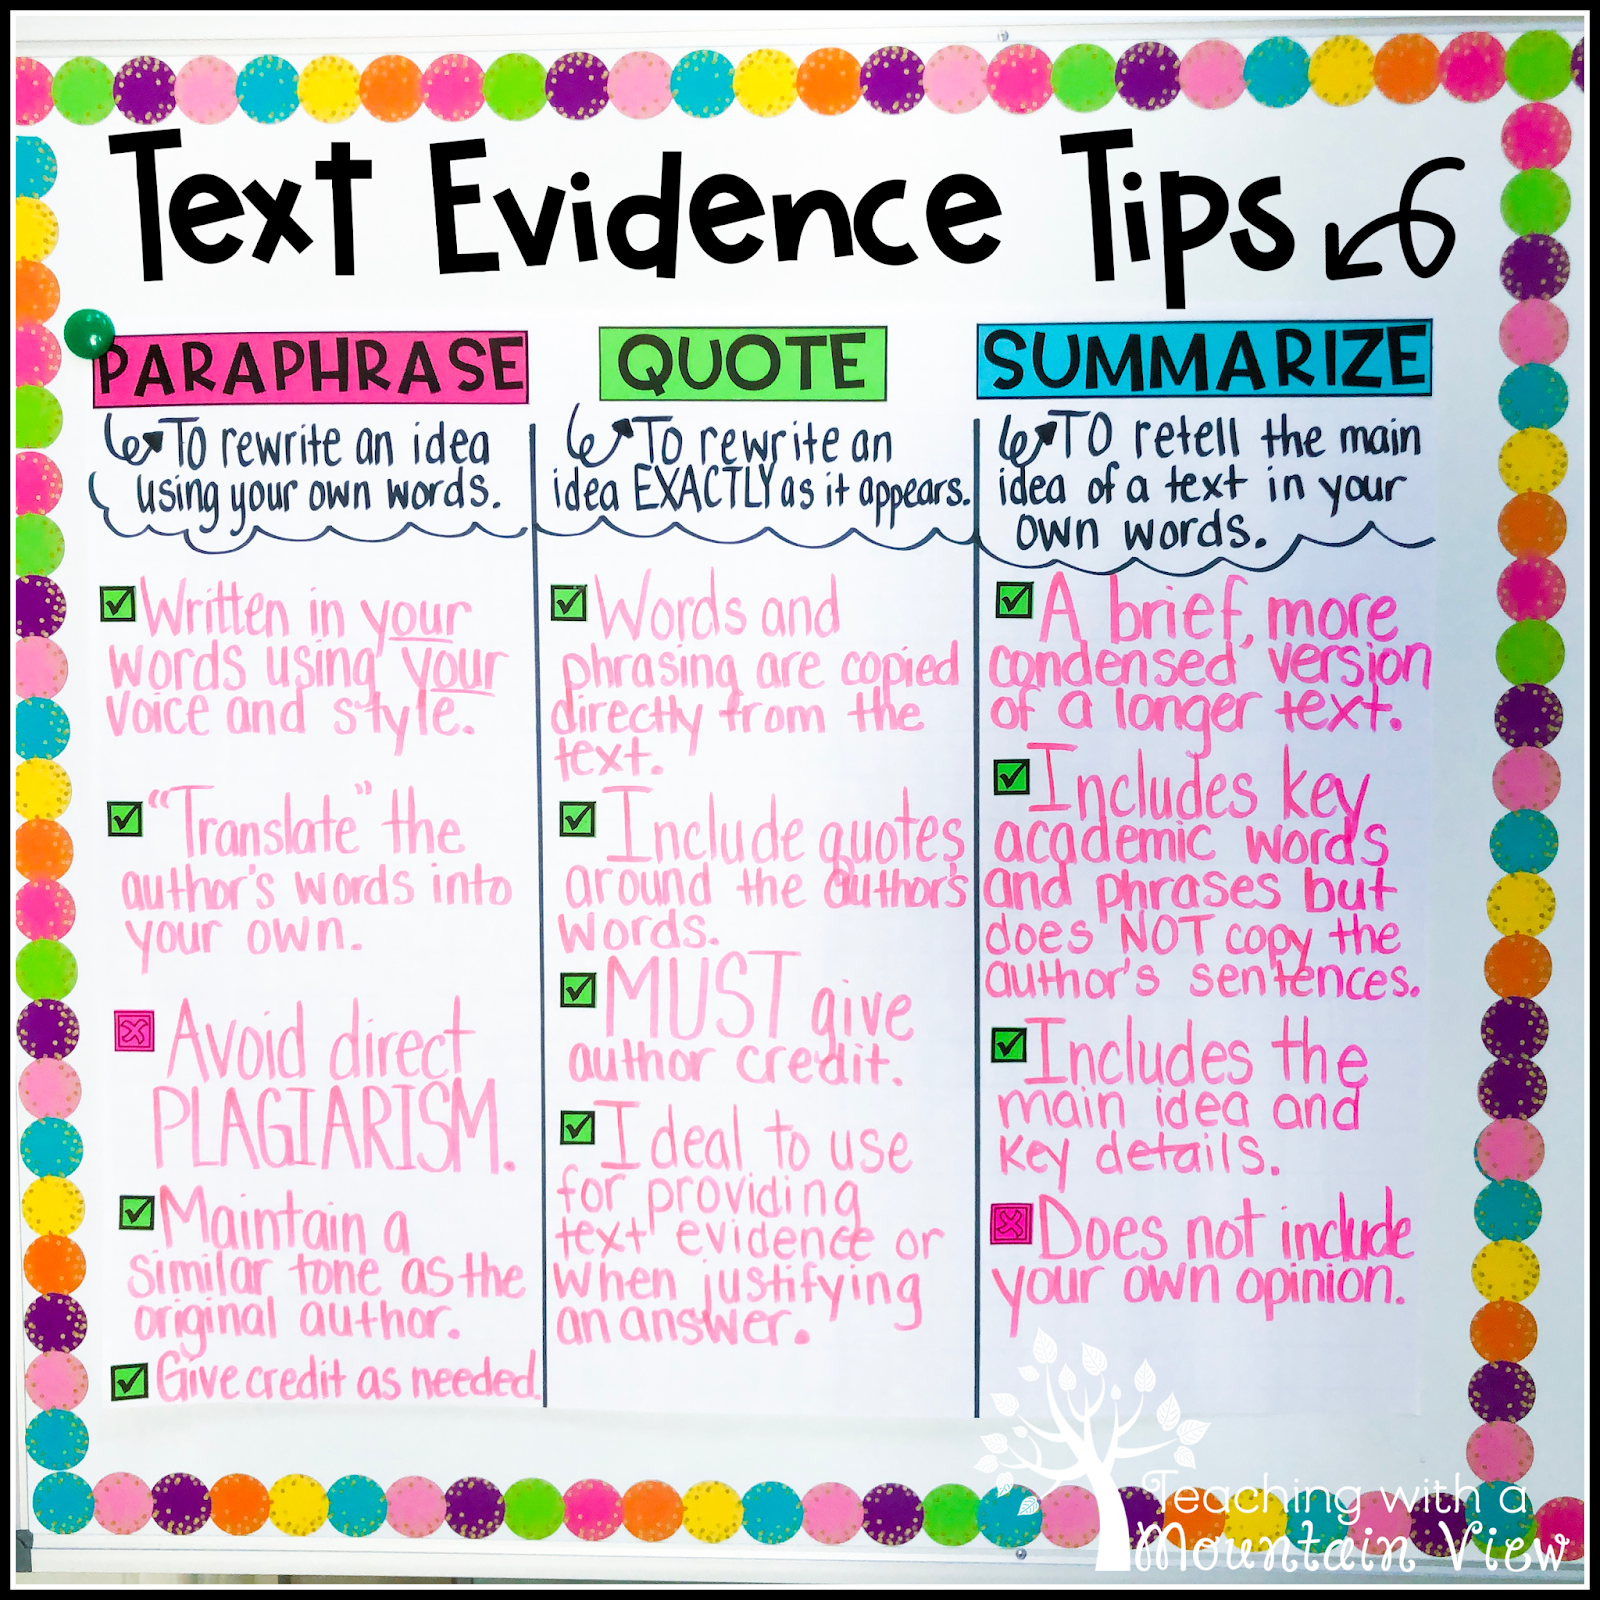 Summarizing Paraphrasing And Quoting Text Teaching With A Mountain View Evidence Summary Quotation Paraphrase